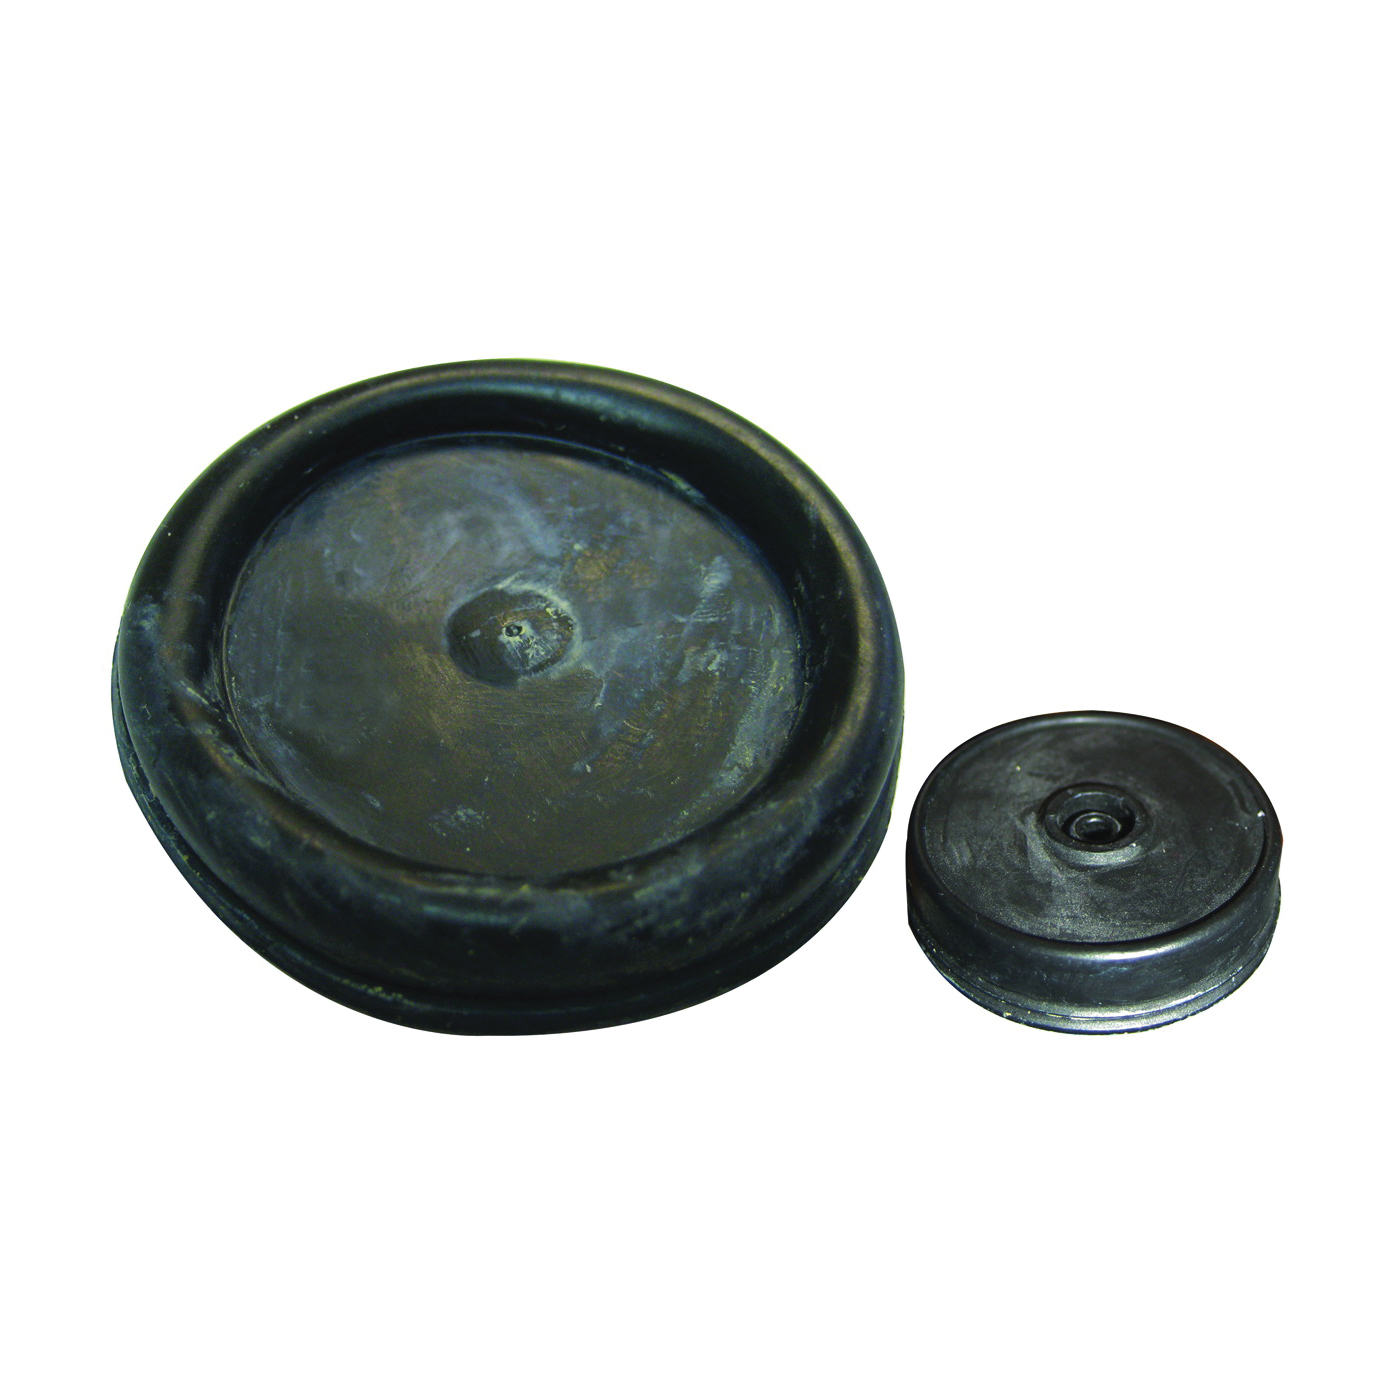 Picture of Keeney K830-33 Repair Kit, Rubber, Gray, For: Mini Pilot Fill Valve